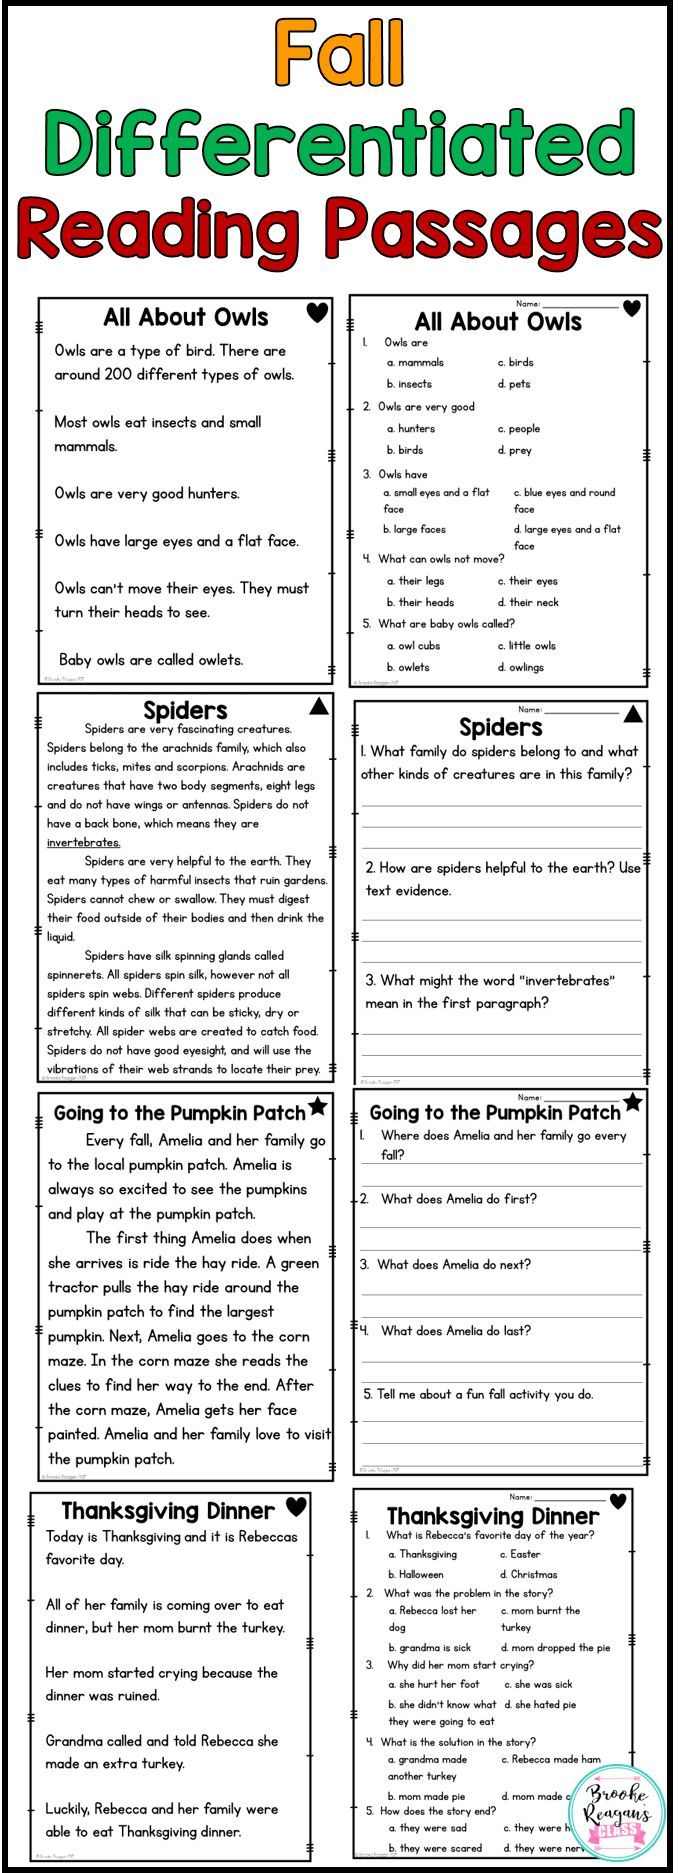 Fall Reading Passages Differentiated Levels To Meet Your Students Needs Perfect F Comprehension Passage Differentiated Reading Reading Comprehension Passages [ 1873 x 680 Pixel ]